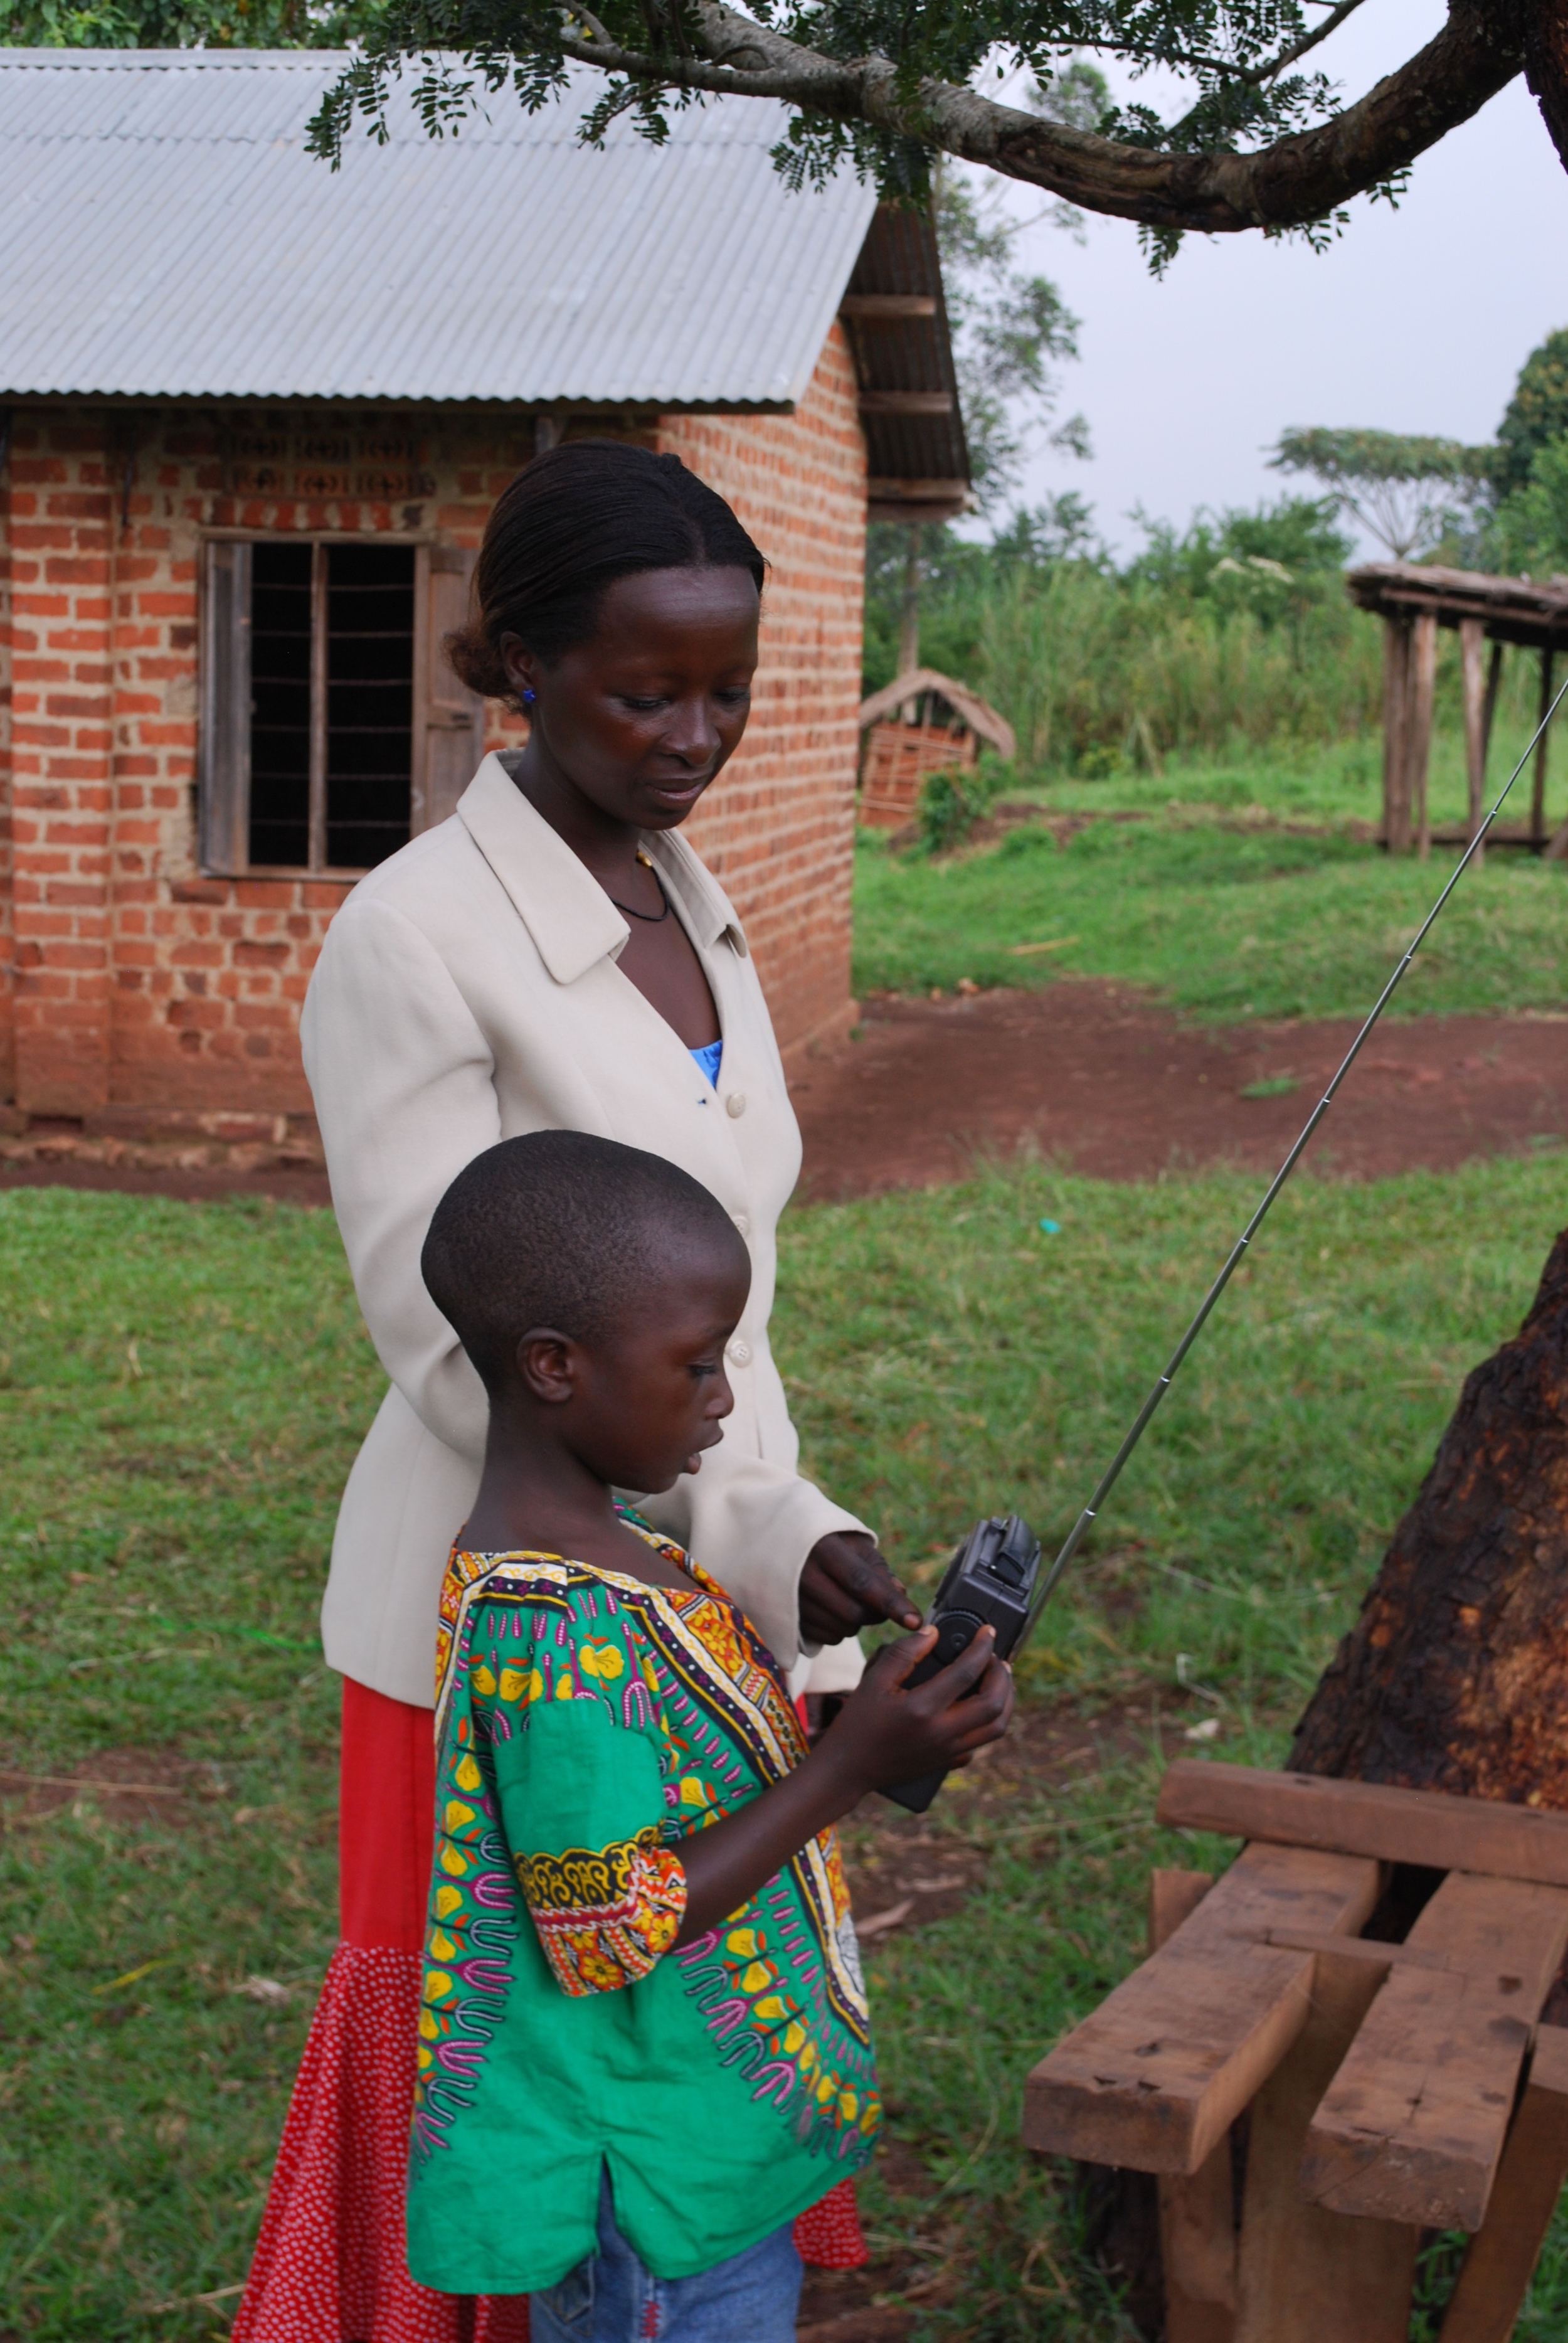 (Photo provided by ETOW partner in Uganda, The Empower Campaign)